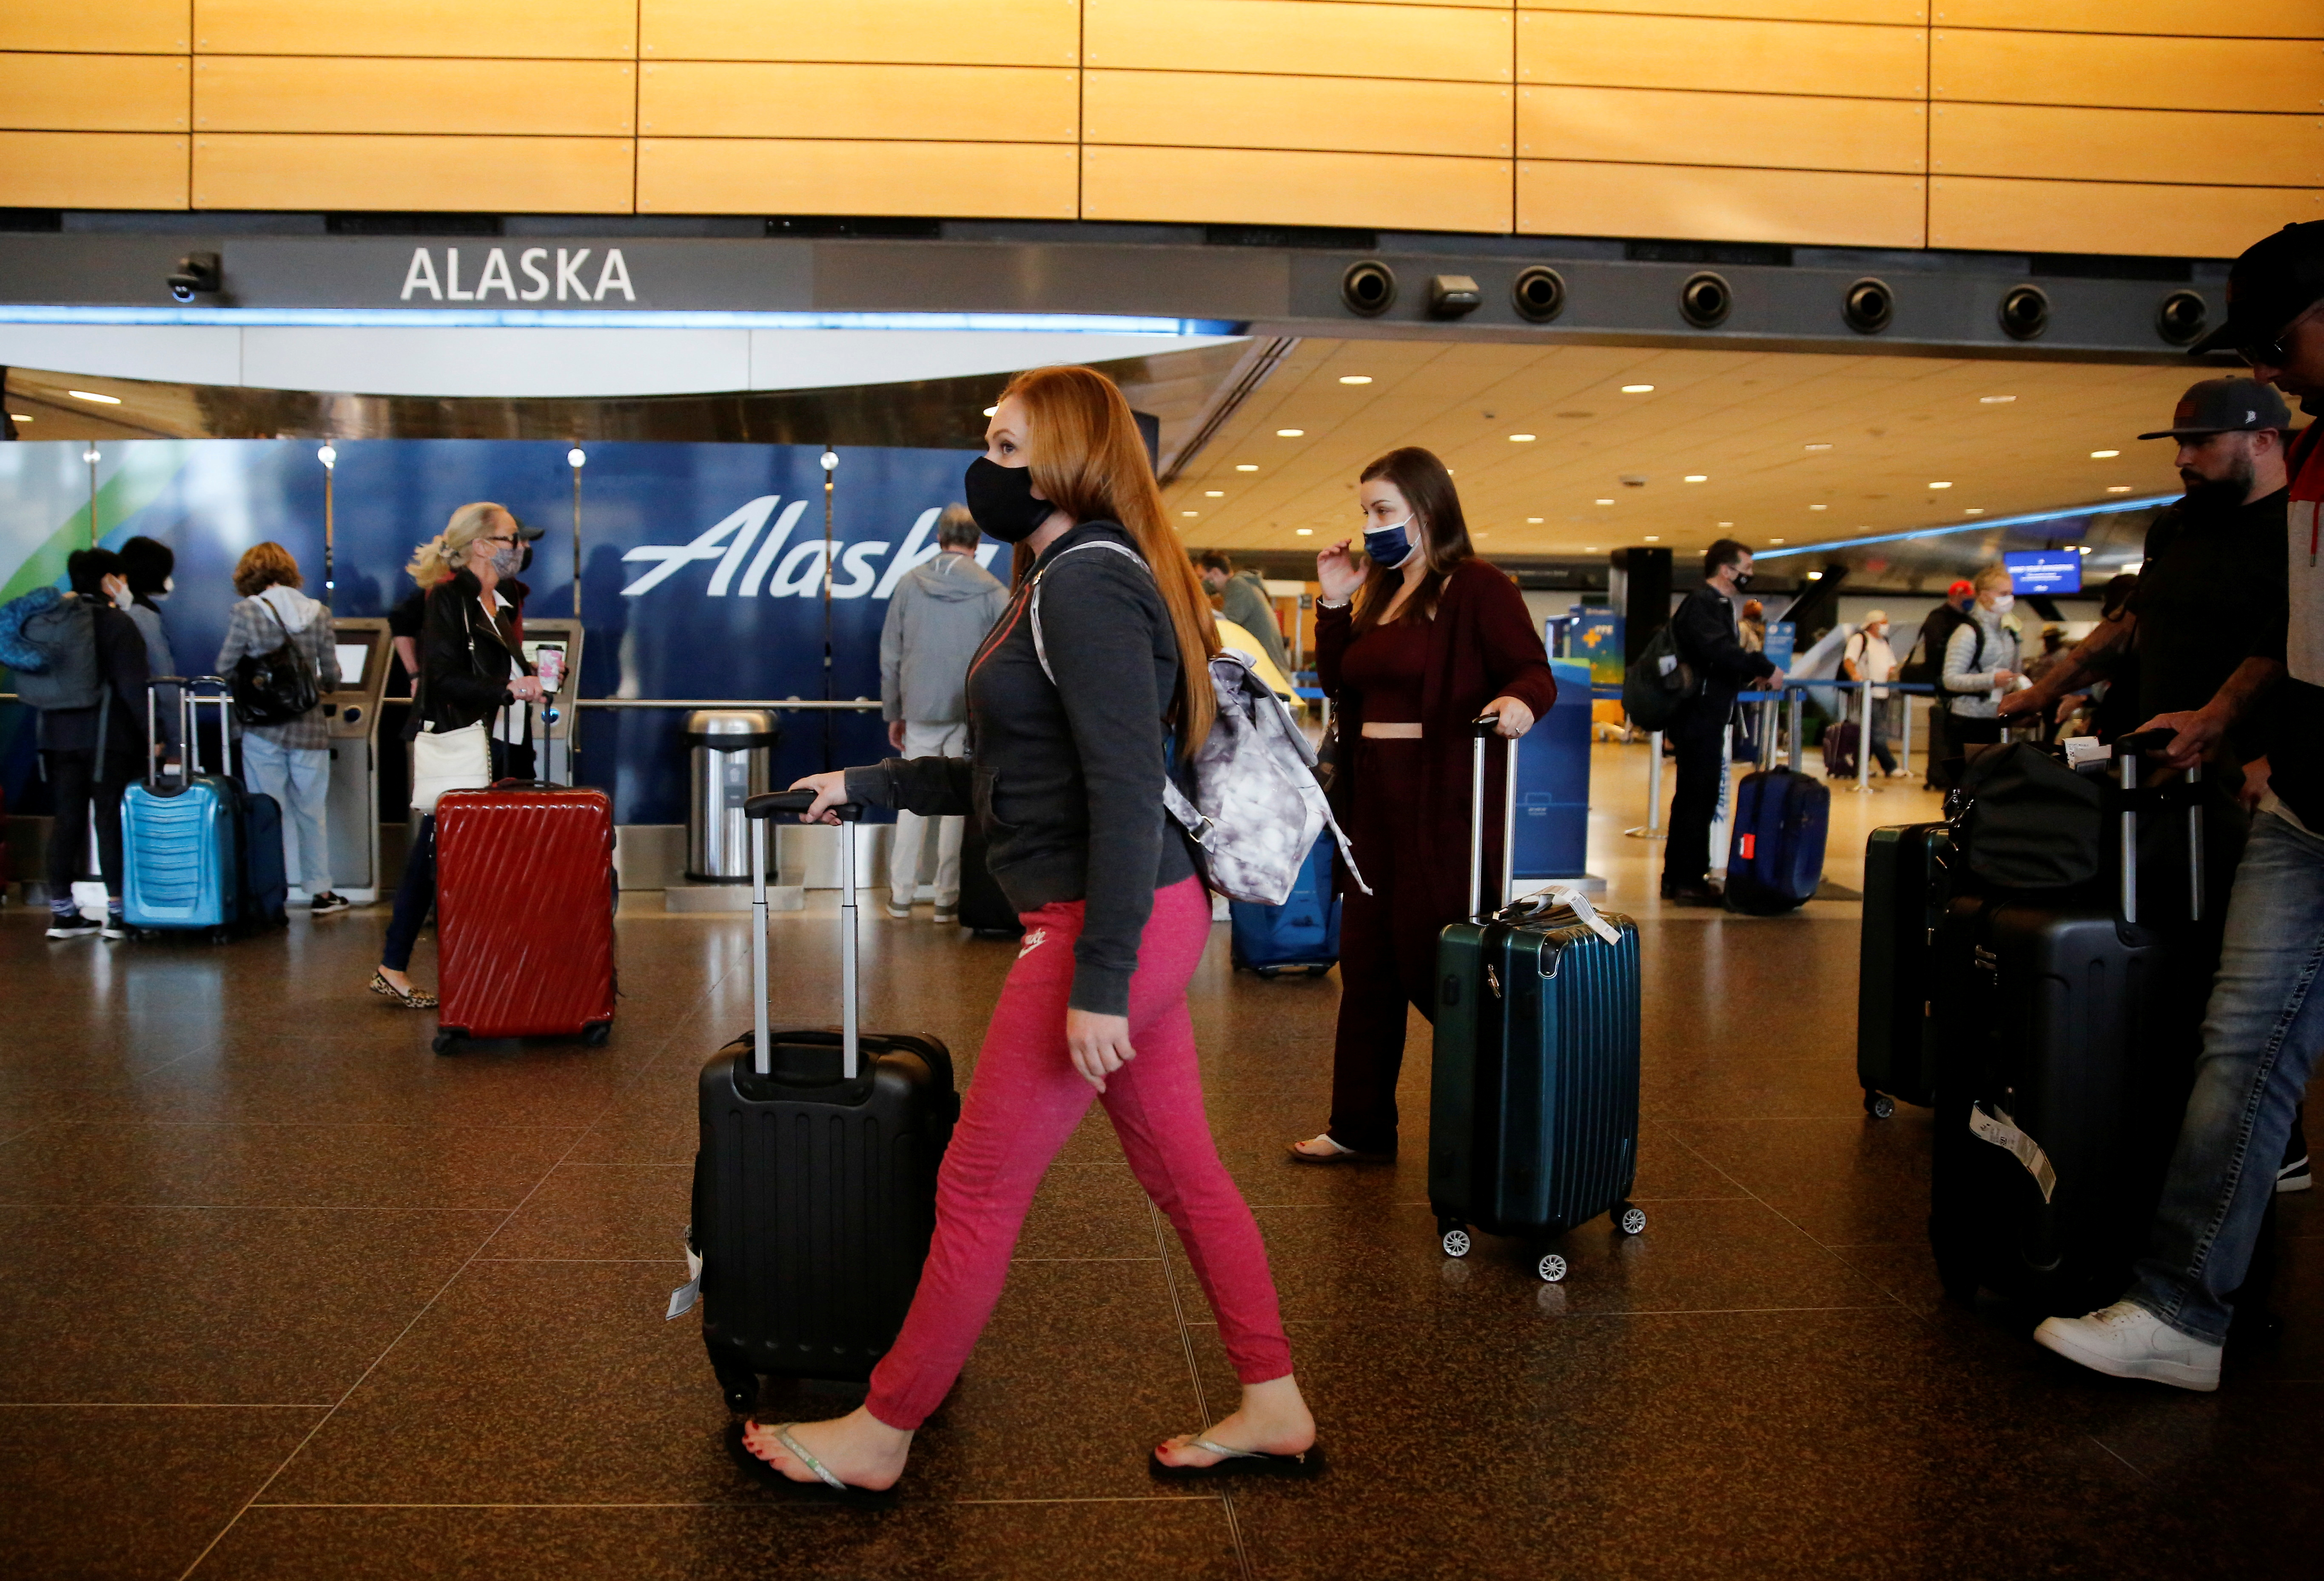 Travelers walk by check-in kiosks for Alaska Airlines at the departures section of Seattle-Tacoma International Airport in SeaTac, Washington, U.S. April 12, 2021.  REUTERS/Lindsey Wasson/File Photo